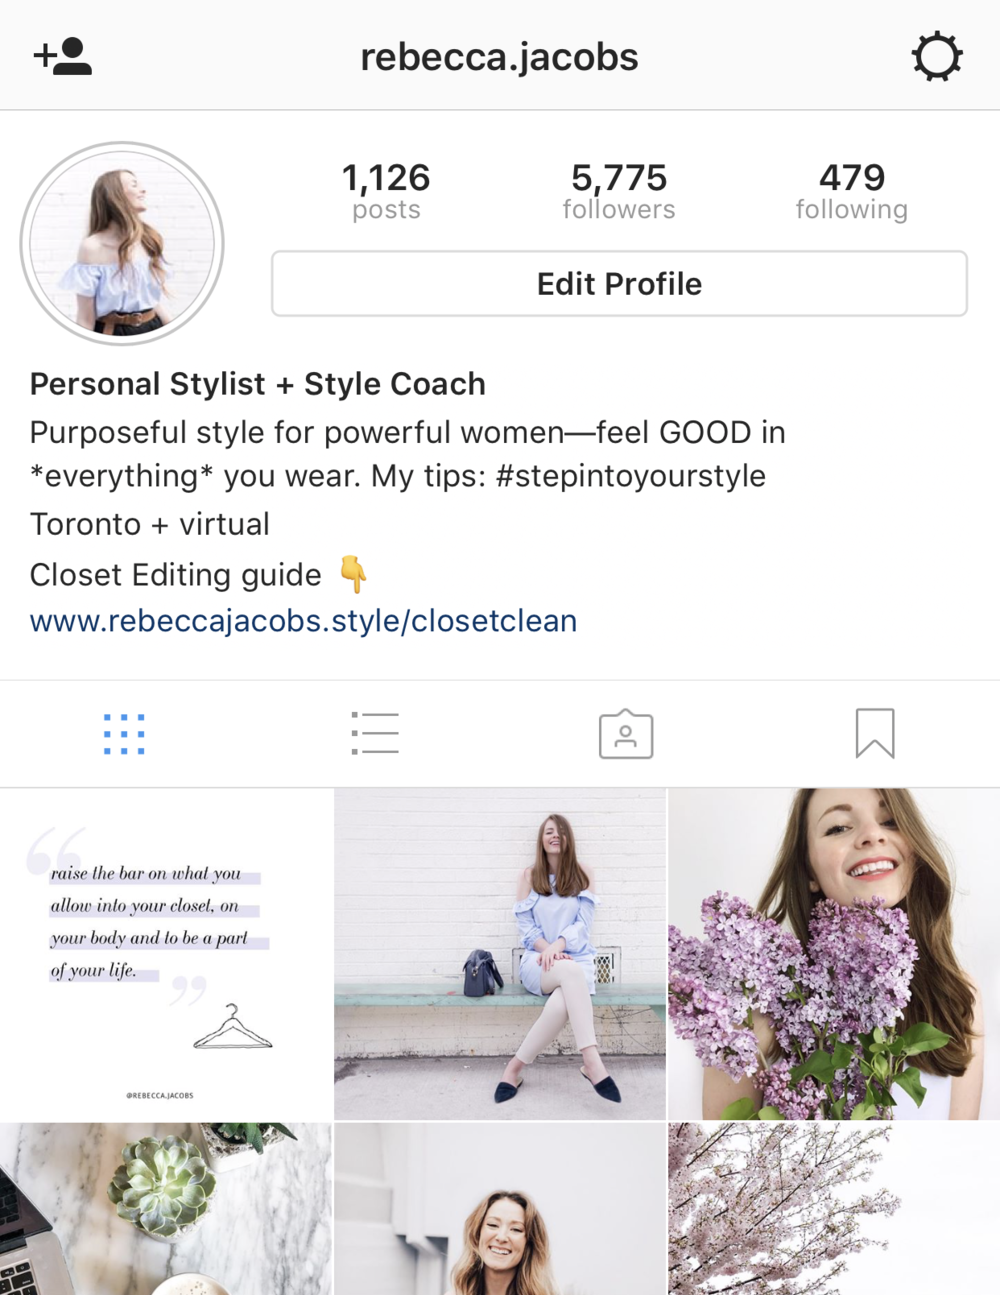 join on IG stories where I share even more outfits than you'll find on here!  - @REBECCA.JACOBS